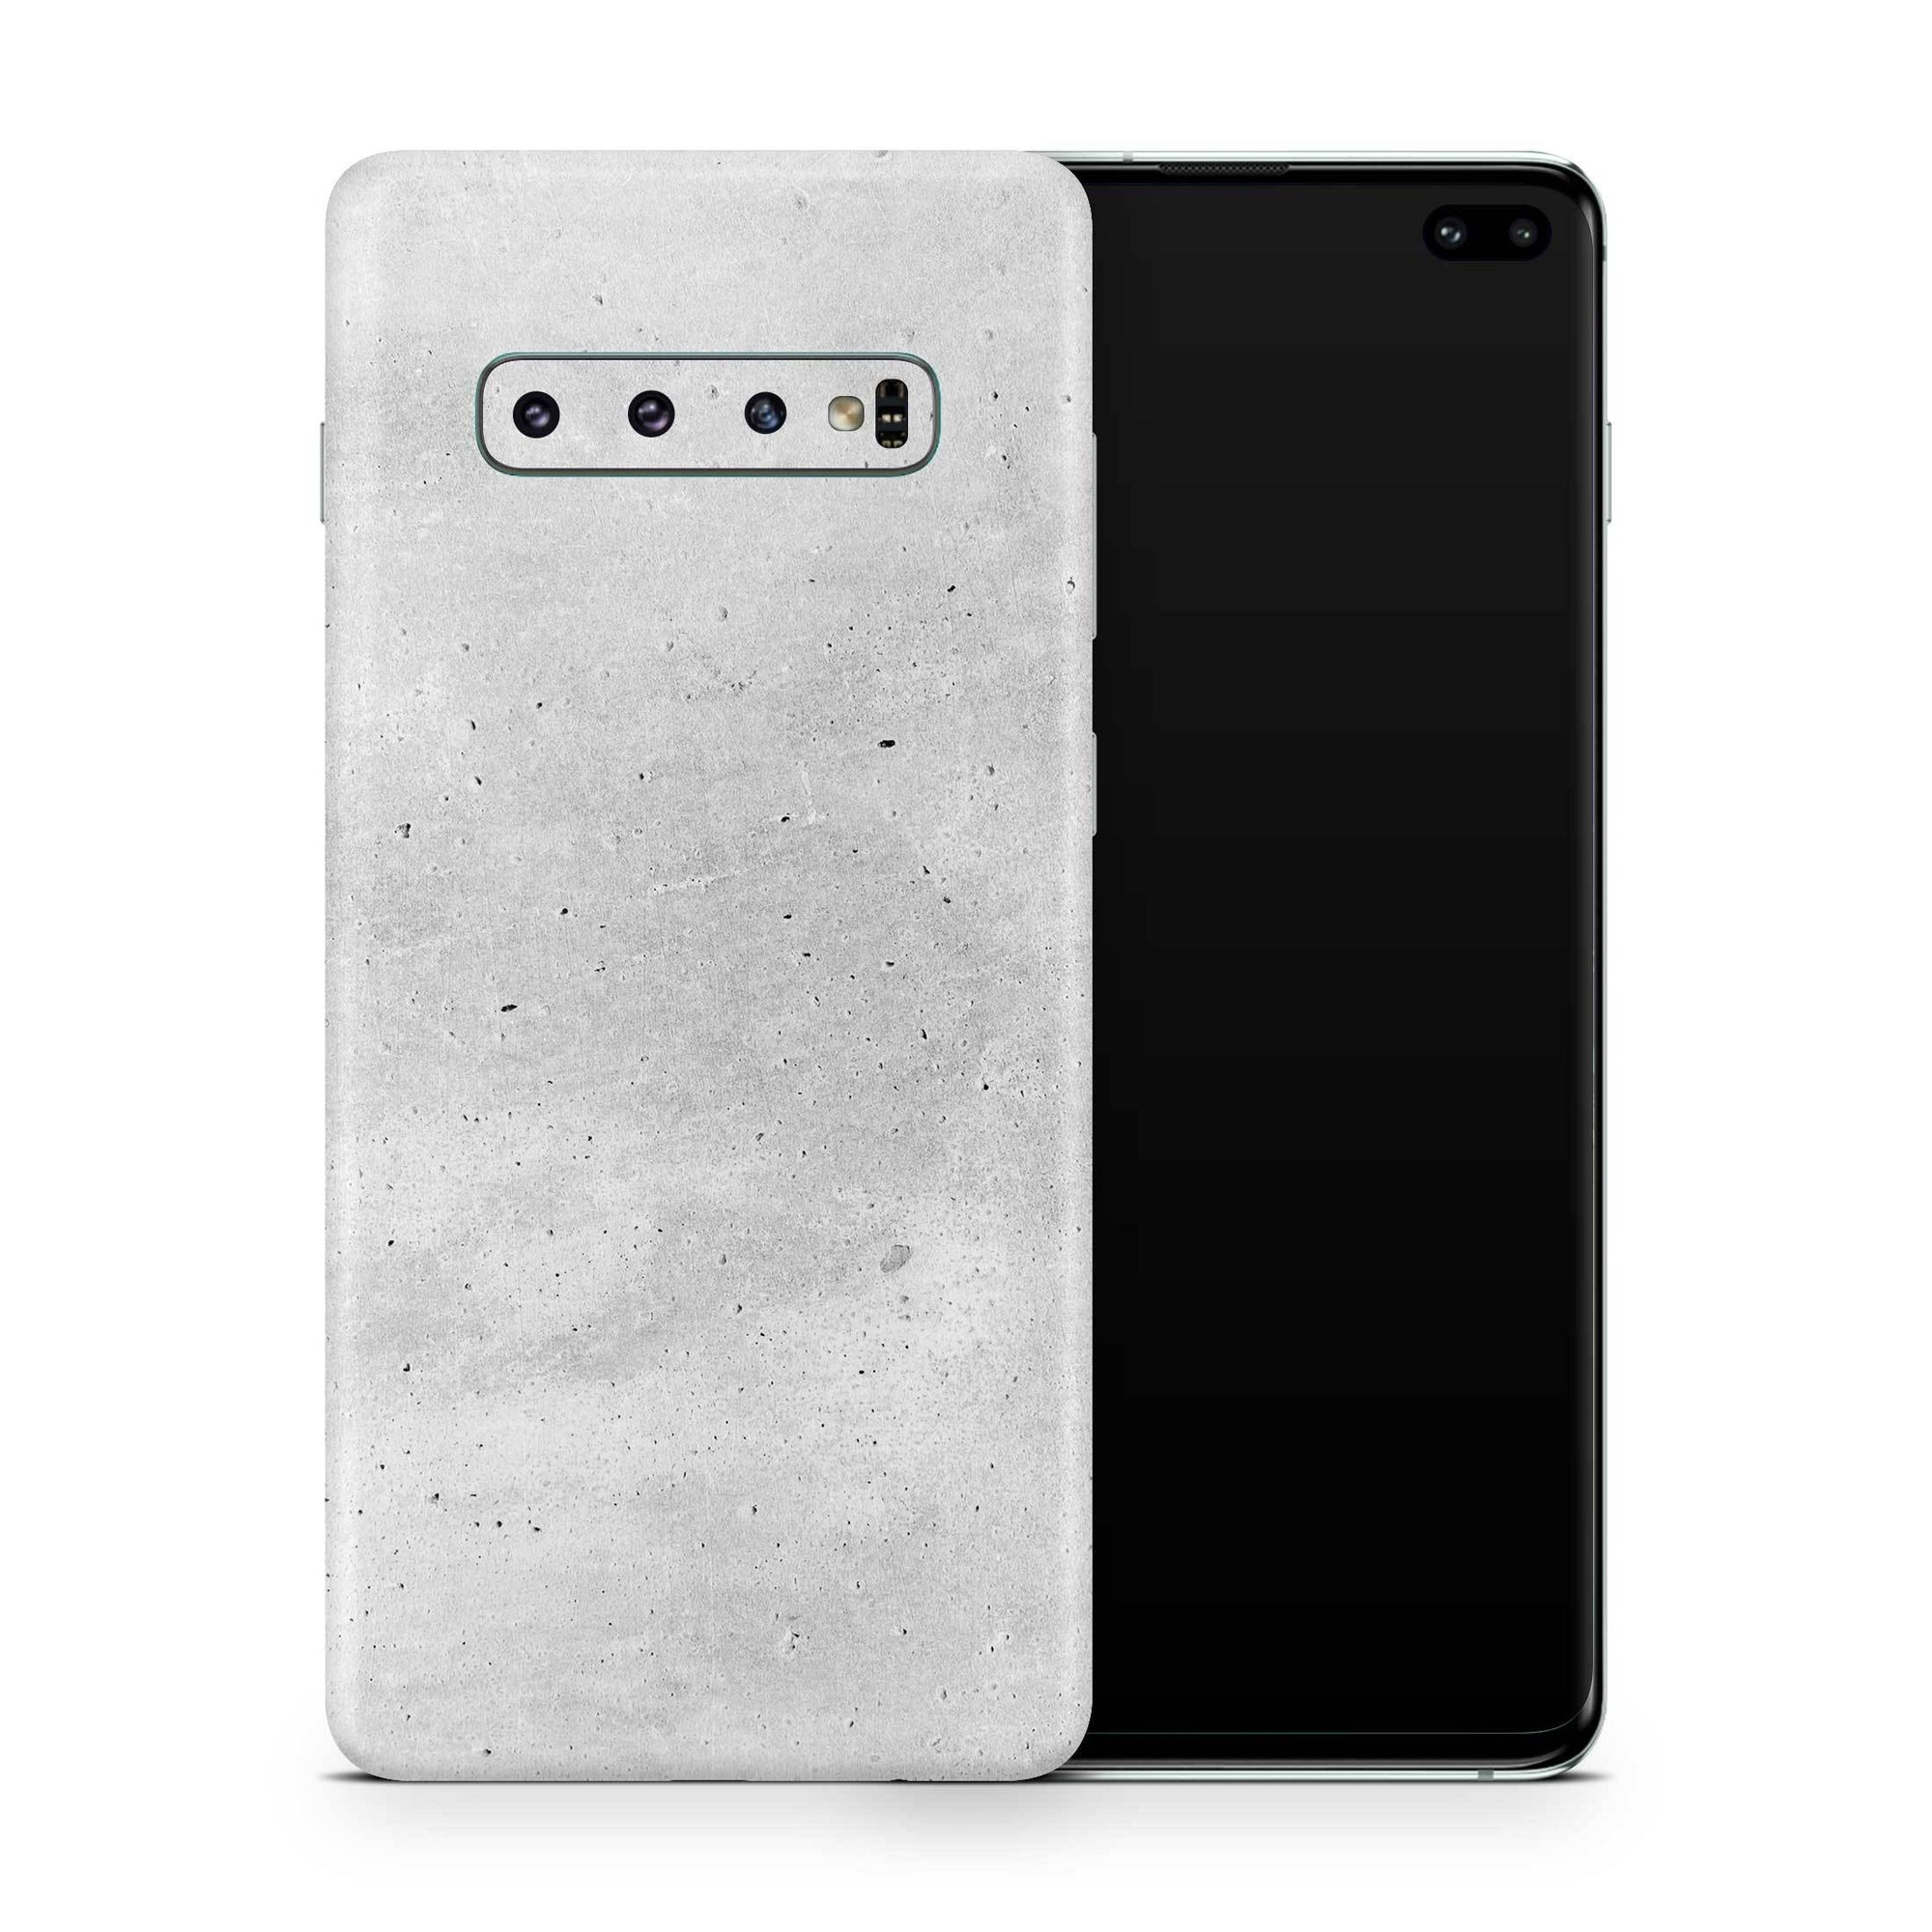 Concrete Skin Samsung S10 and S10 Plus and S10e